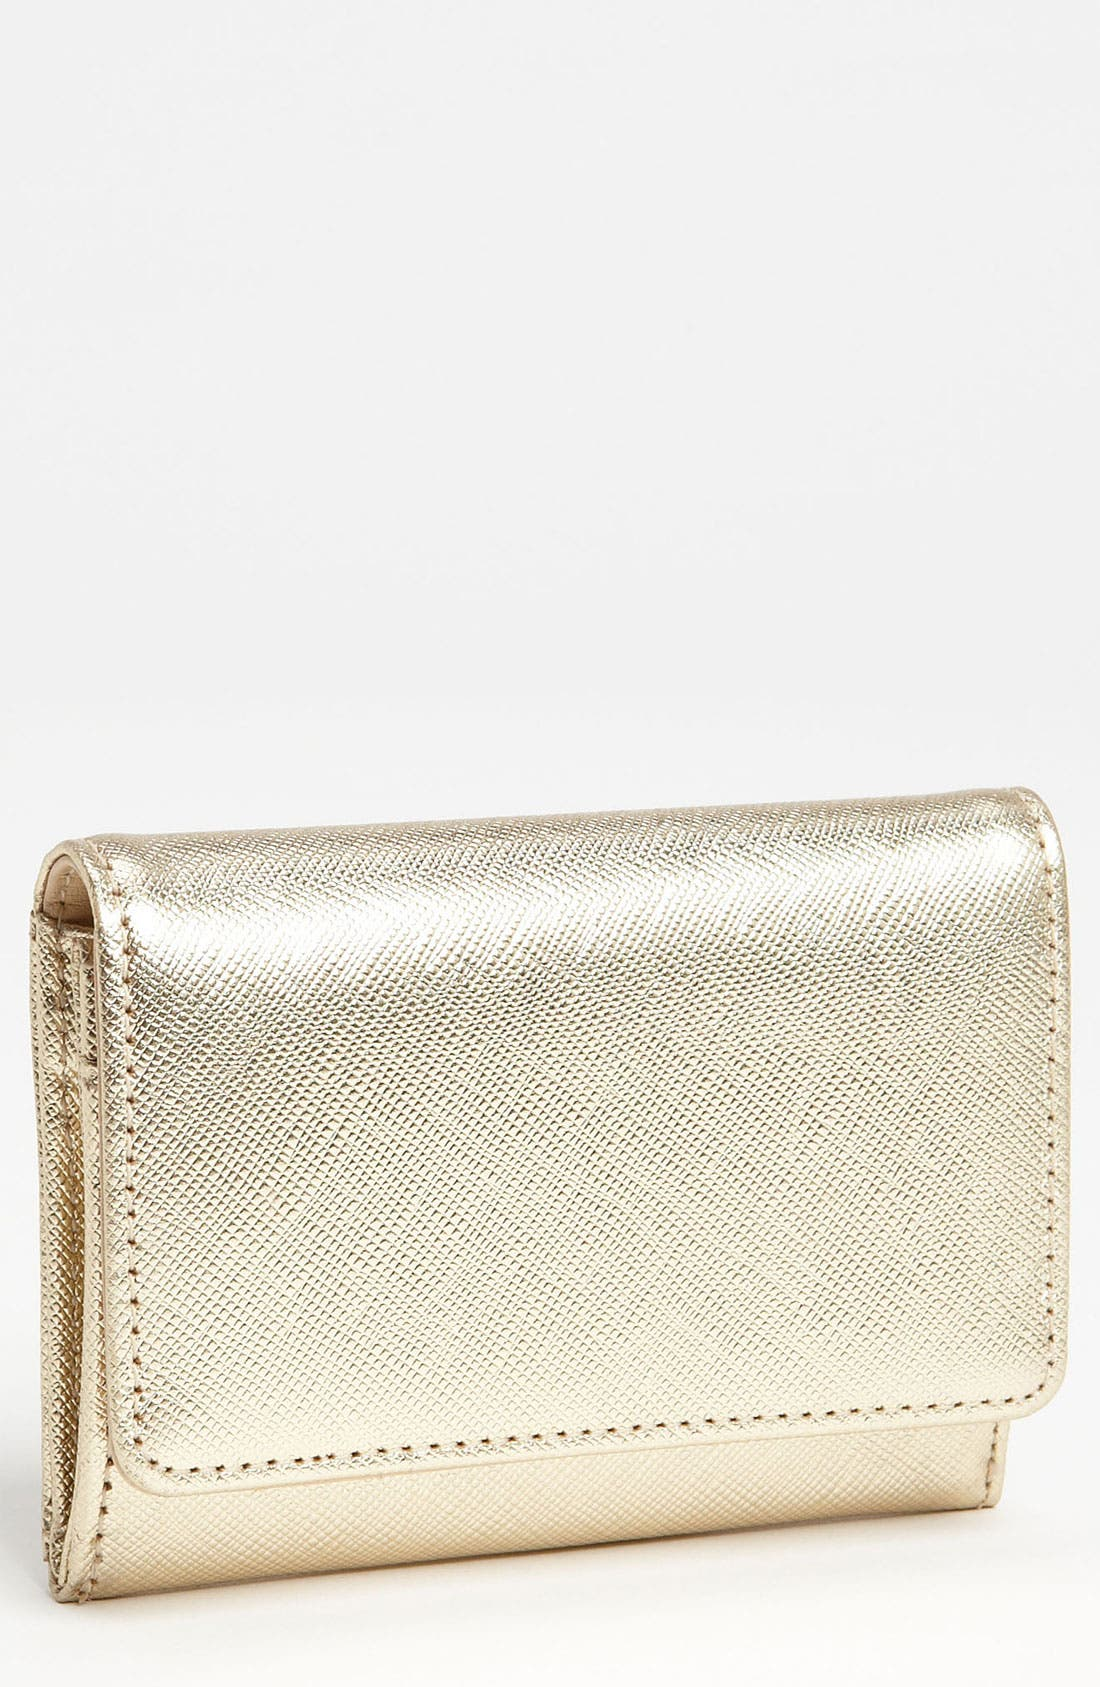 'Emily' Leather Key Clip Wallet,                         Main,                         color, Gold Metallic